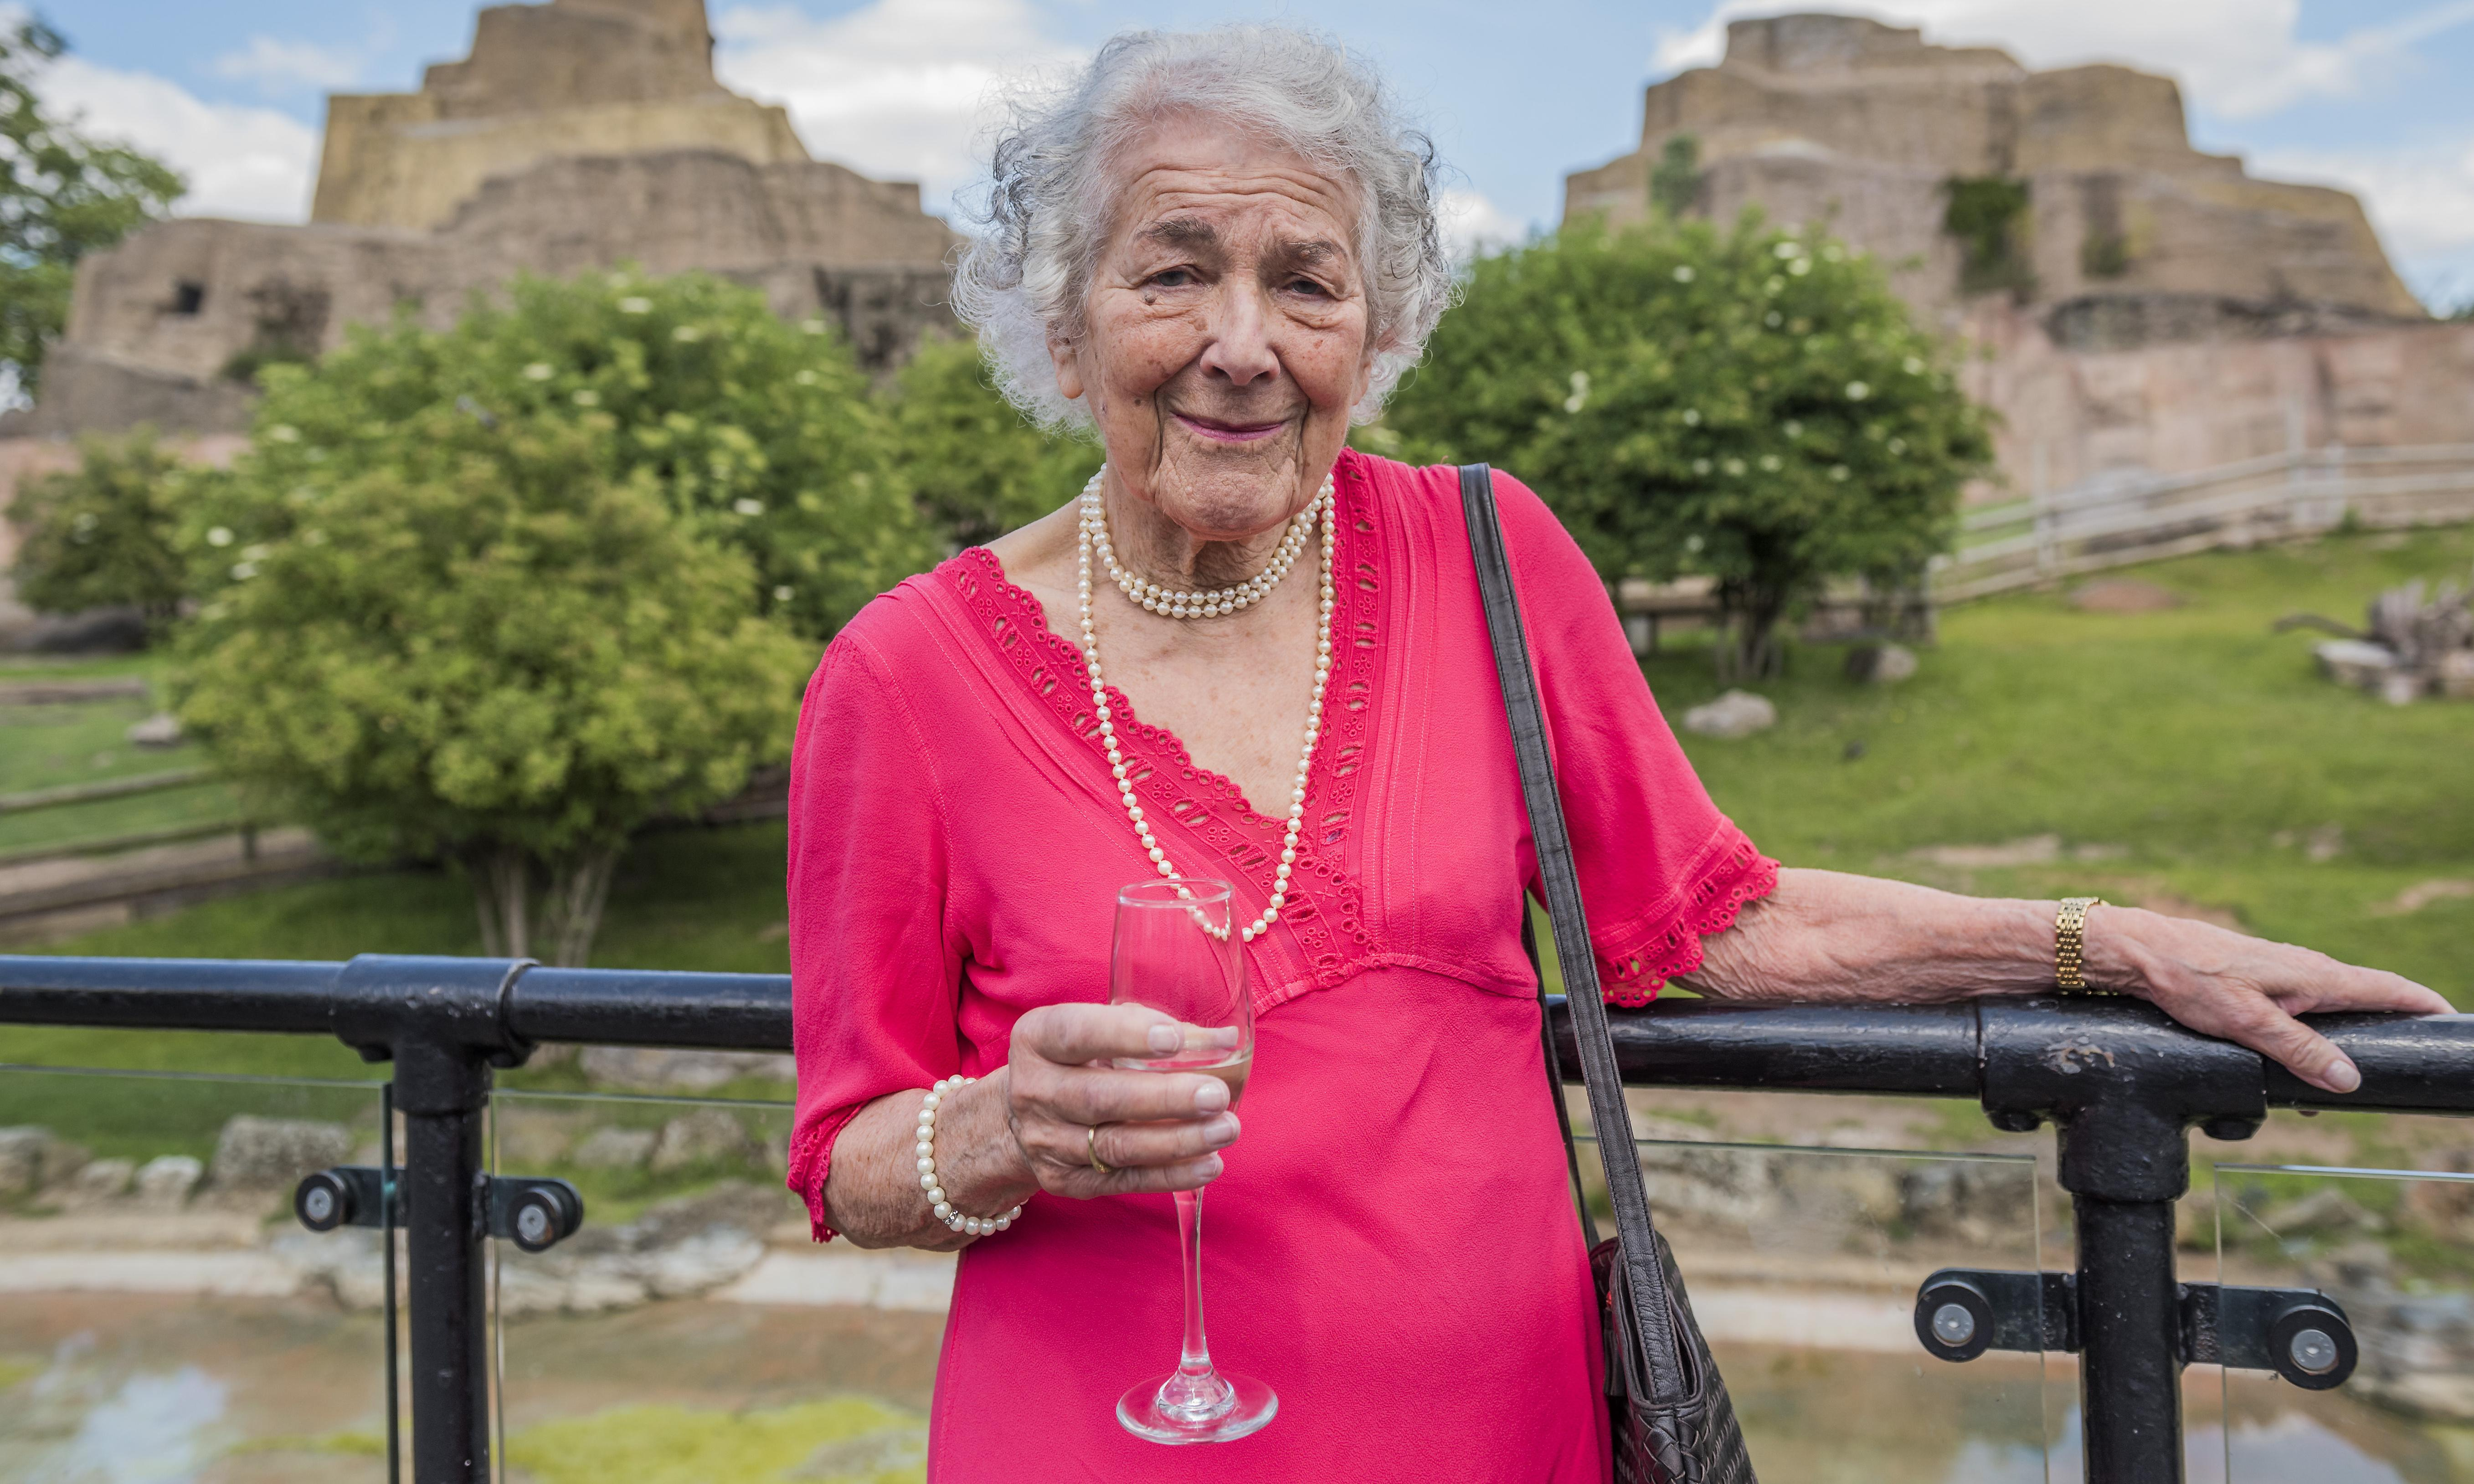 'The nicest person in children's books': readers' tributes and memories of Judith Kerr